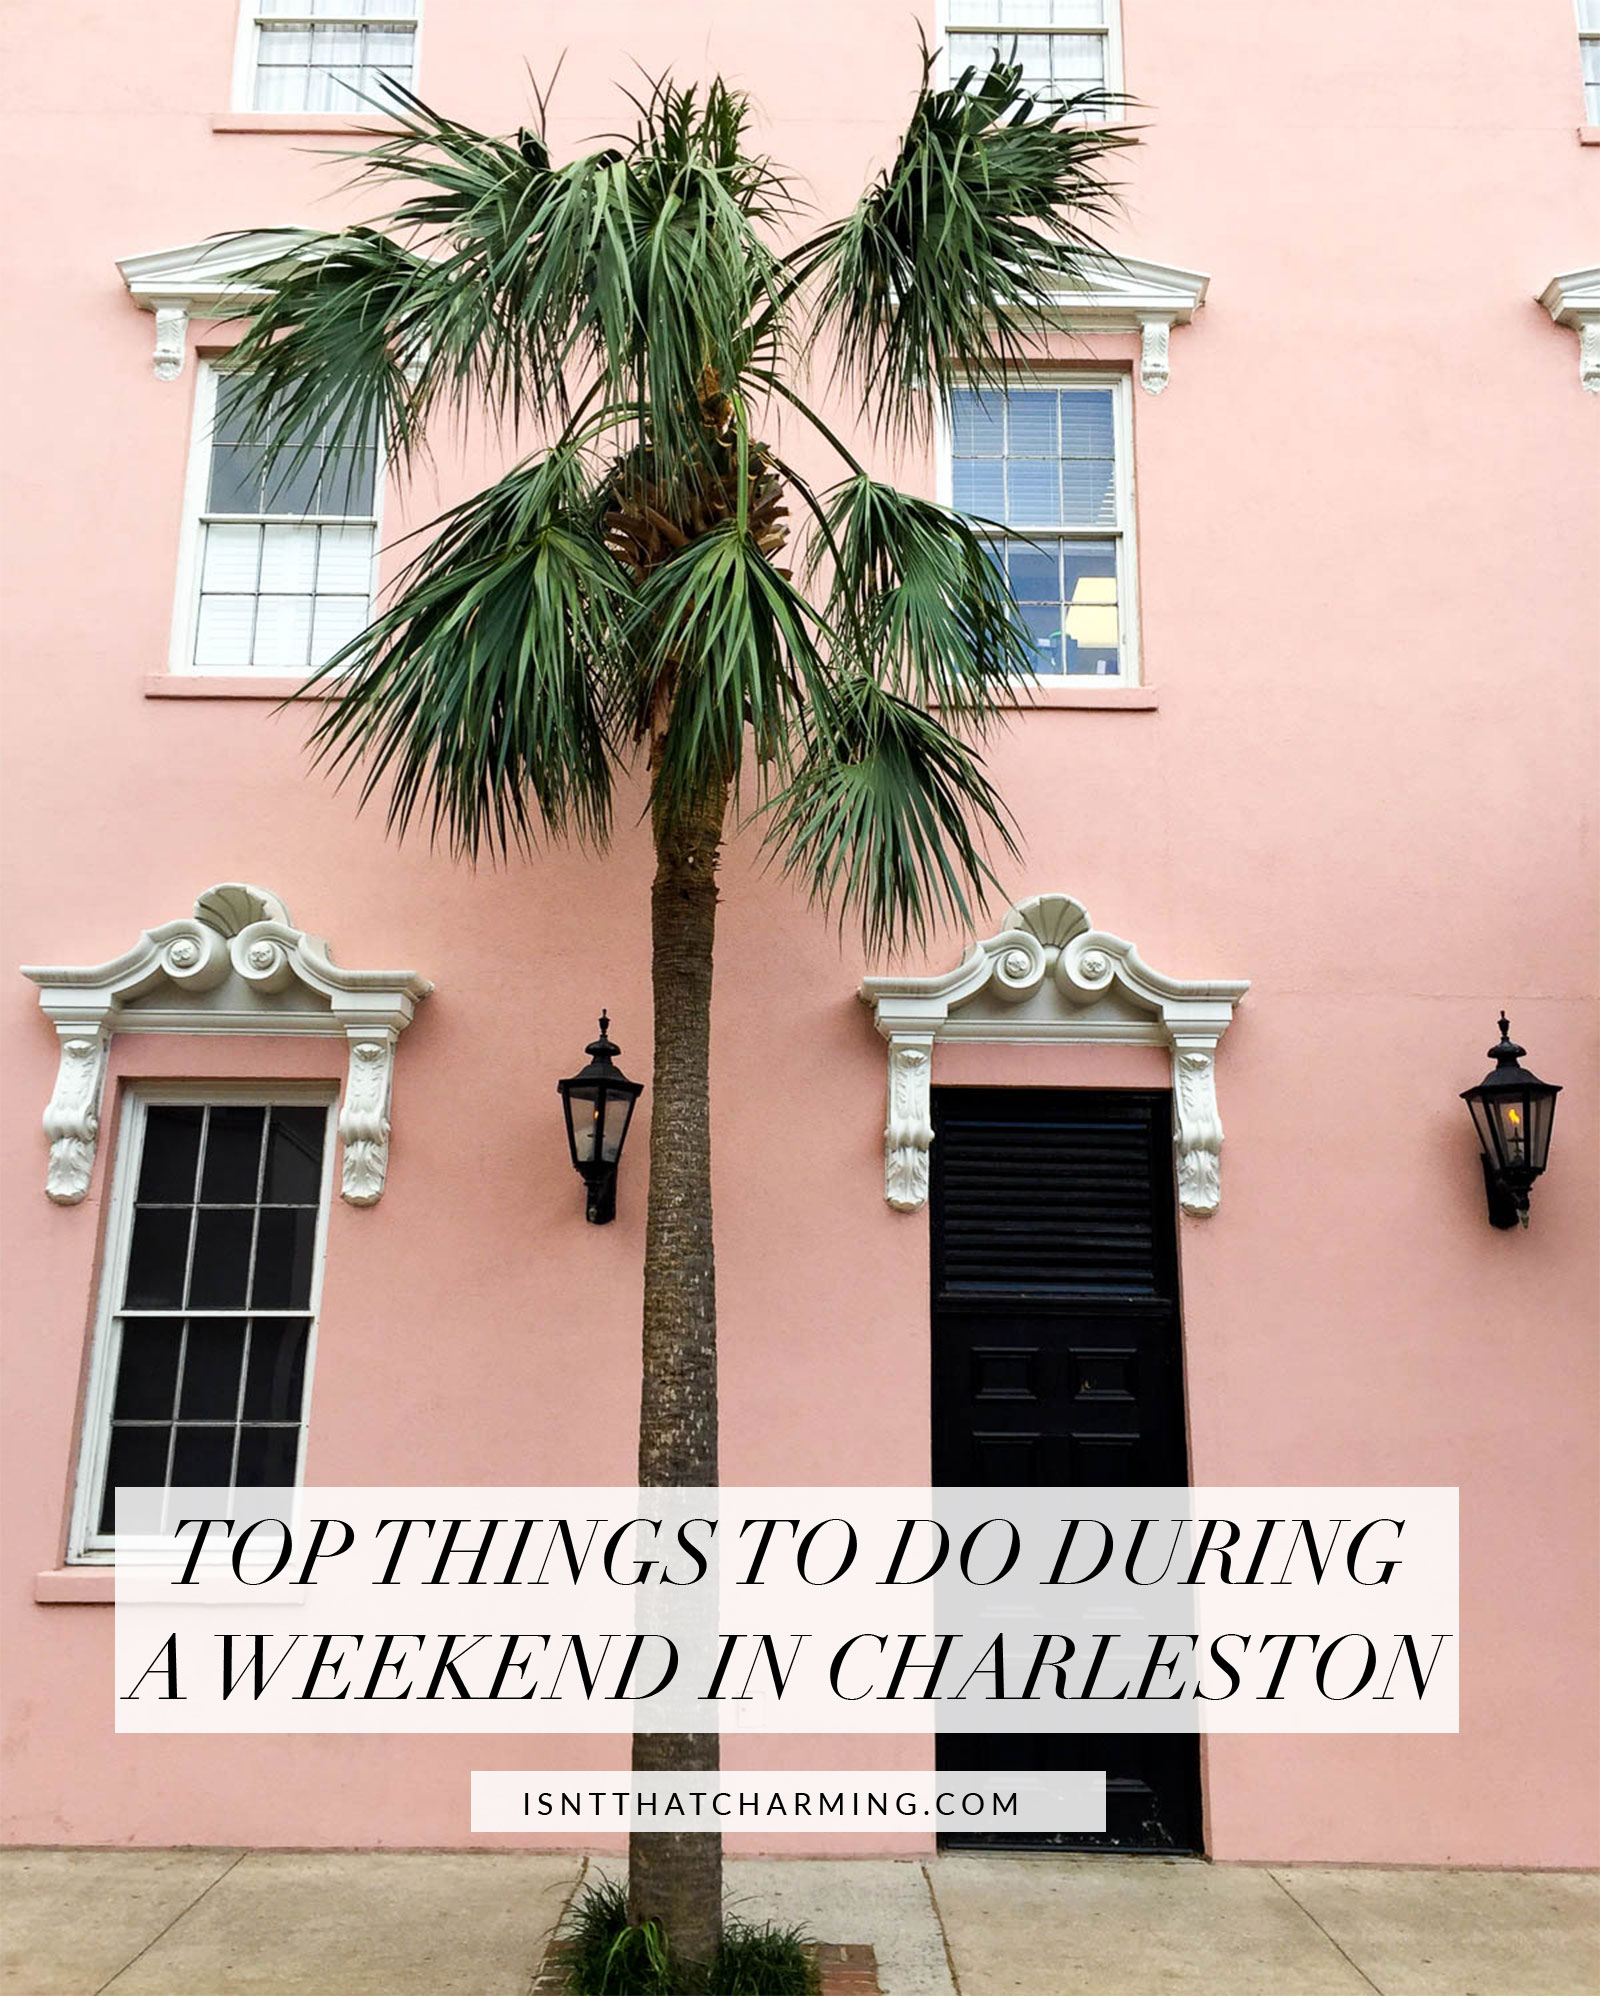 Top Things To Do During A Weekend In Charleston